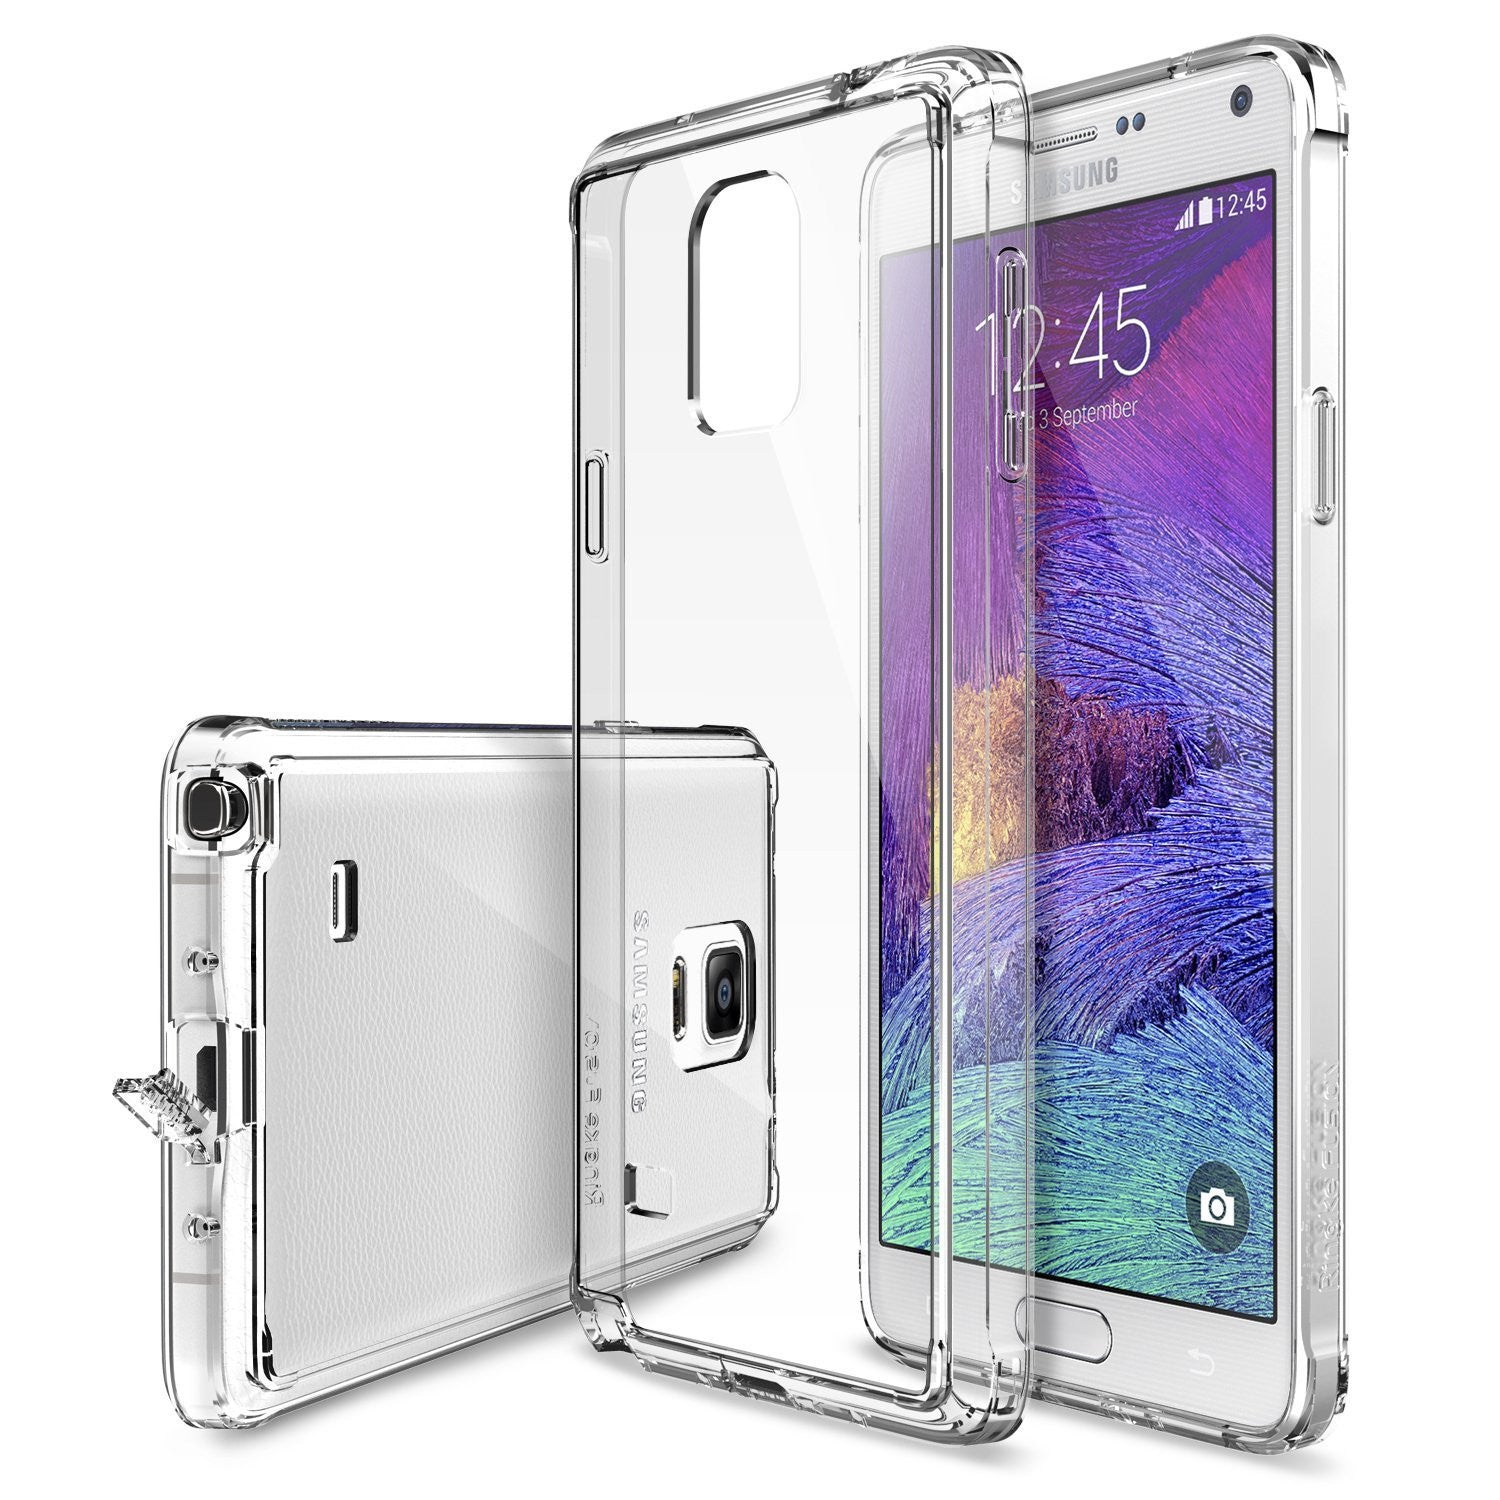 Galaxy Note 4 Case, Ringke® [FUSION] Crystal Clear PC Back TPU Bumper Case